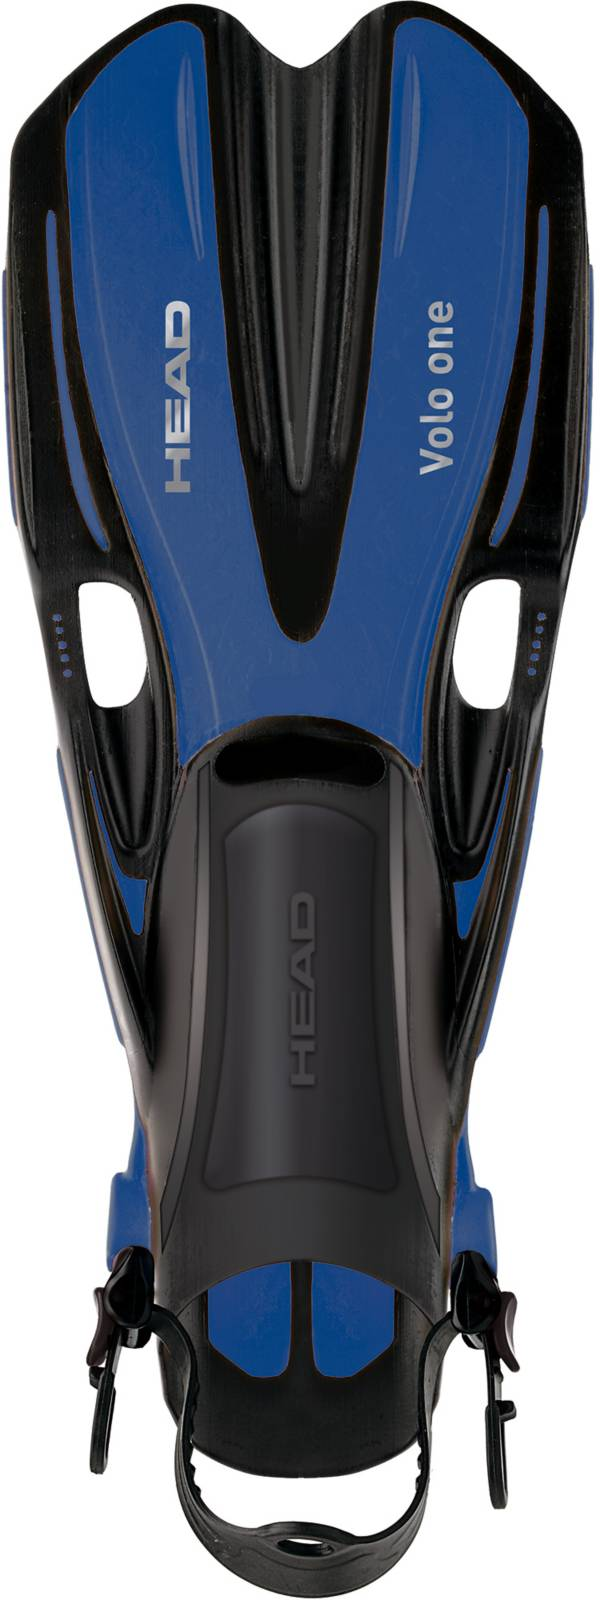 Head Volo One Snorkeling Fins product image